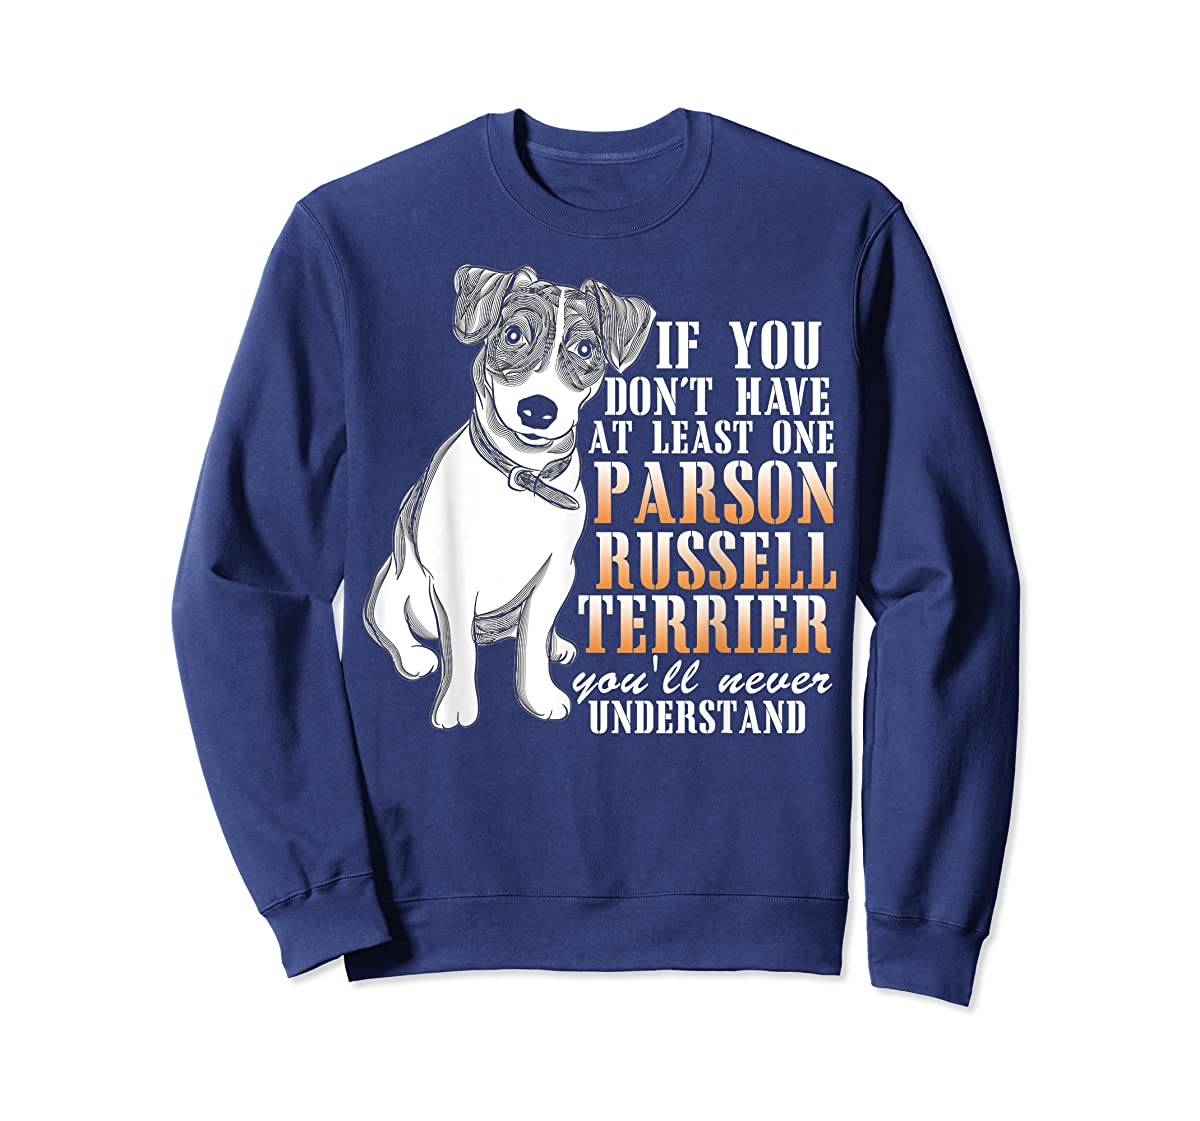 Parson Russell Terrier T Shirt, I Love My Dog T Shirt-Sweatshirt-Navy